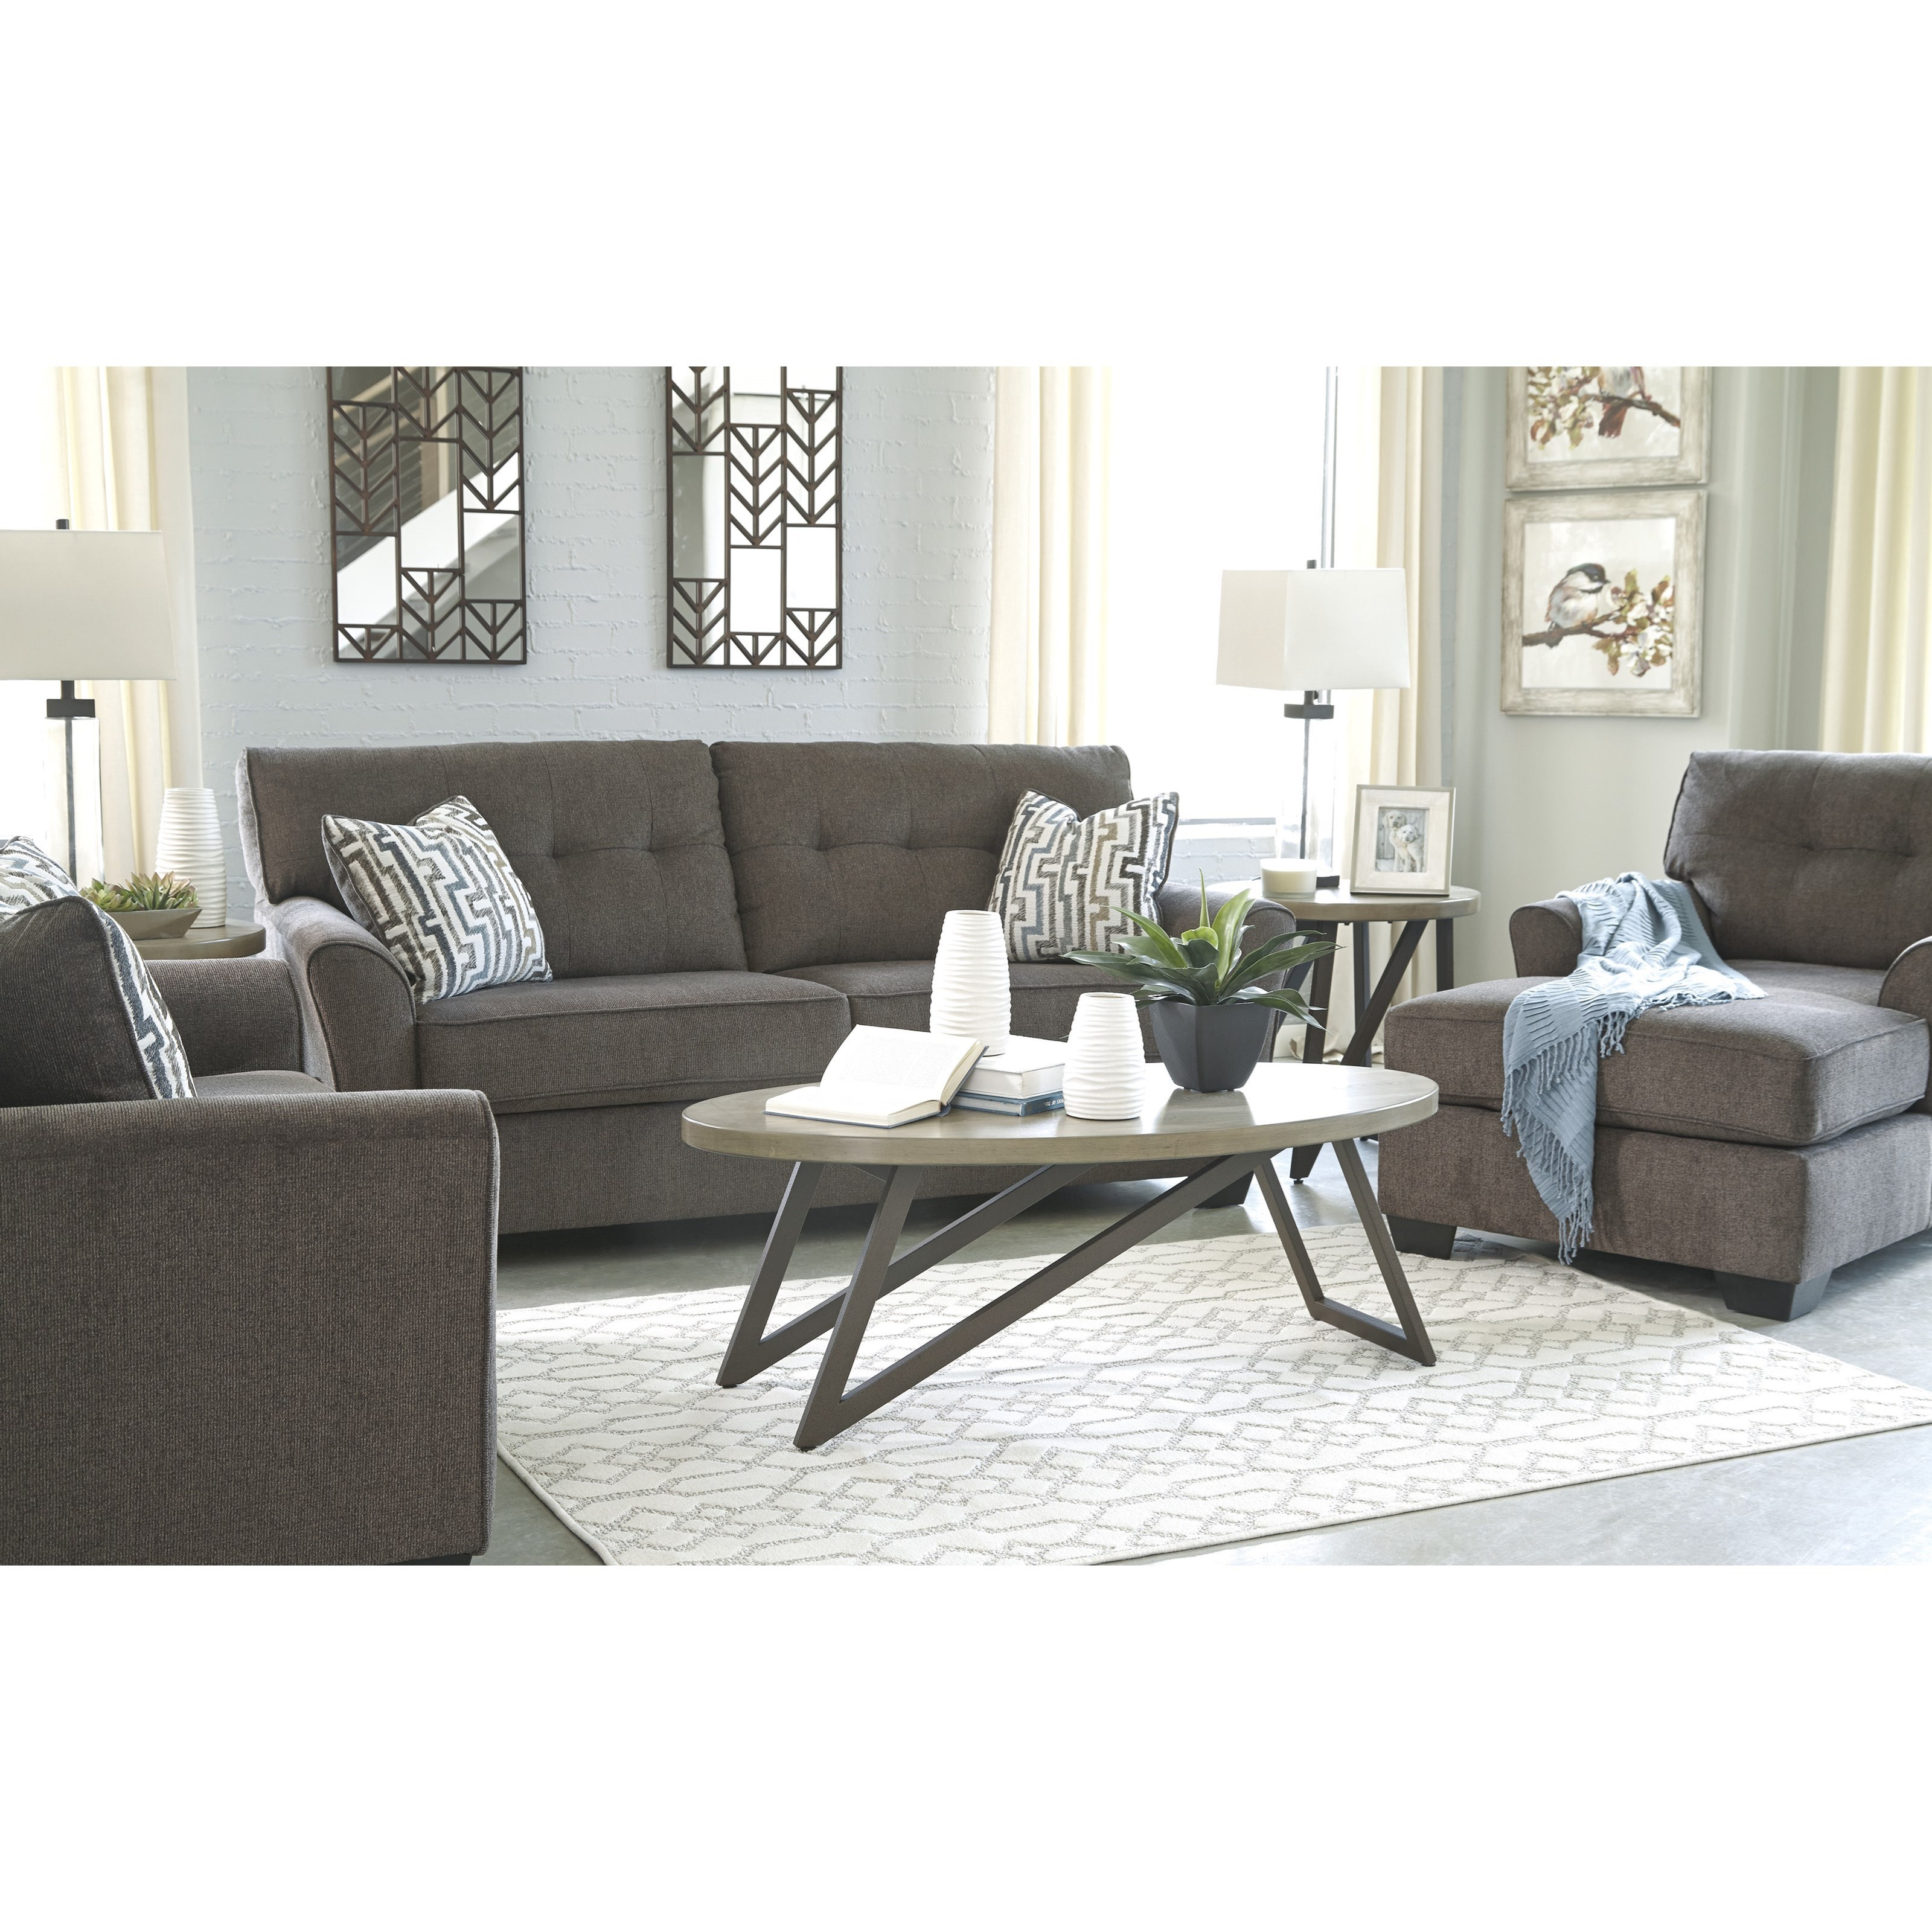 Alsen Stationary Living Room Group by Benchcraft at Simply Home by Lindy's